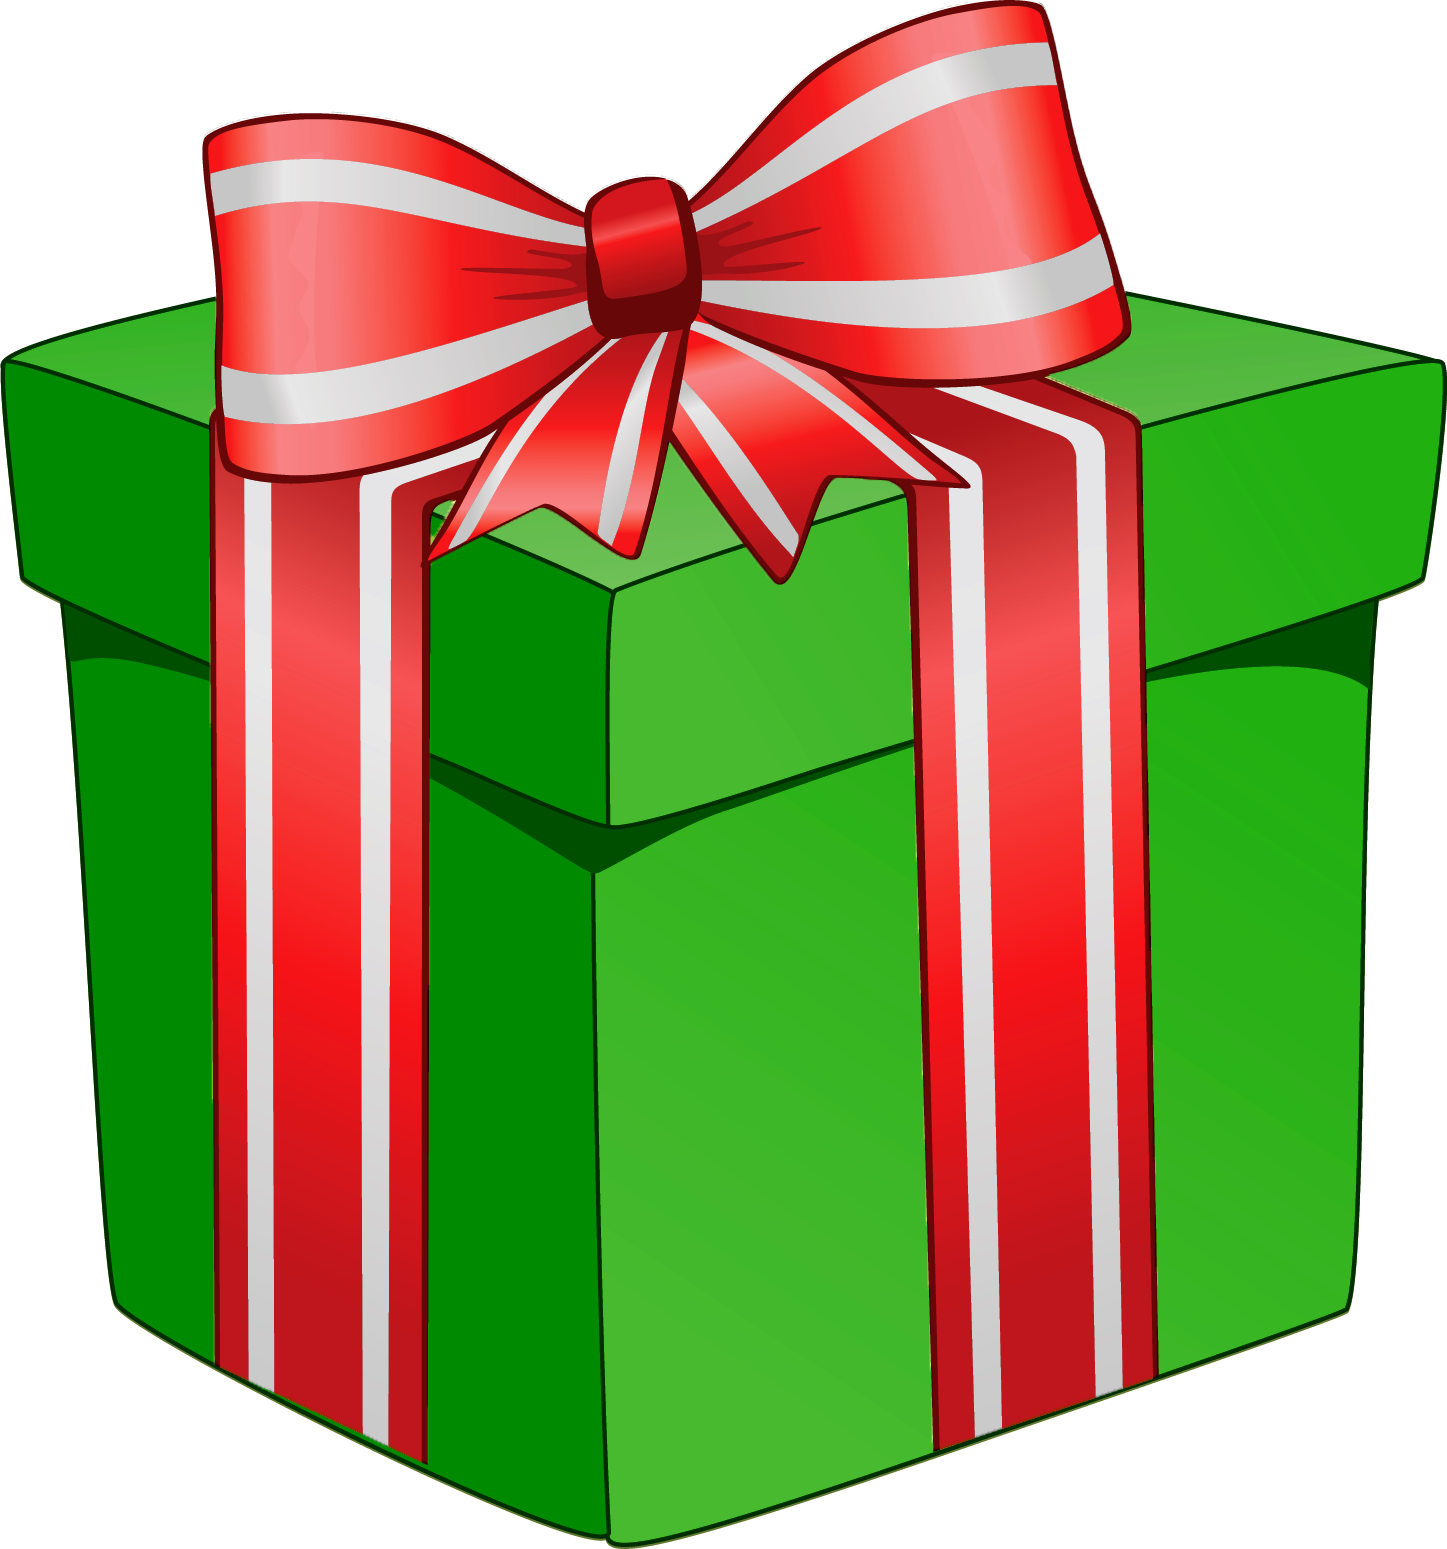 Christmas Gift Box Clipart.